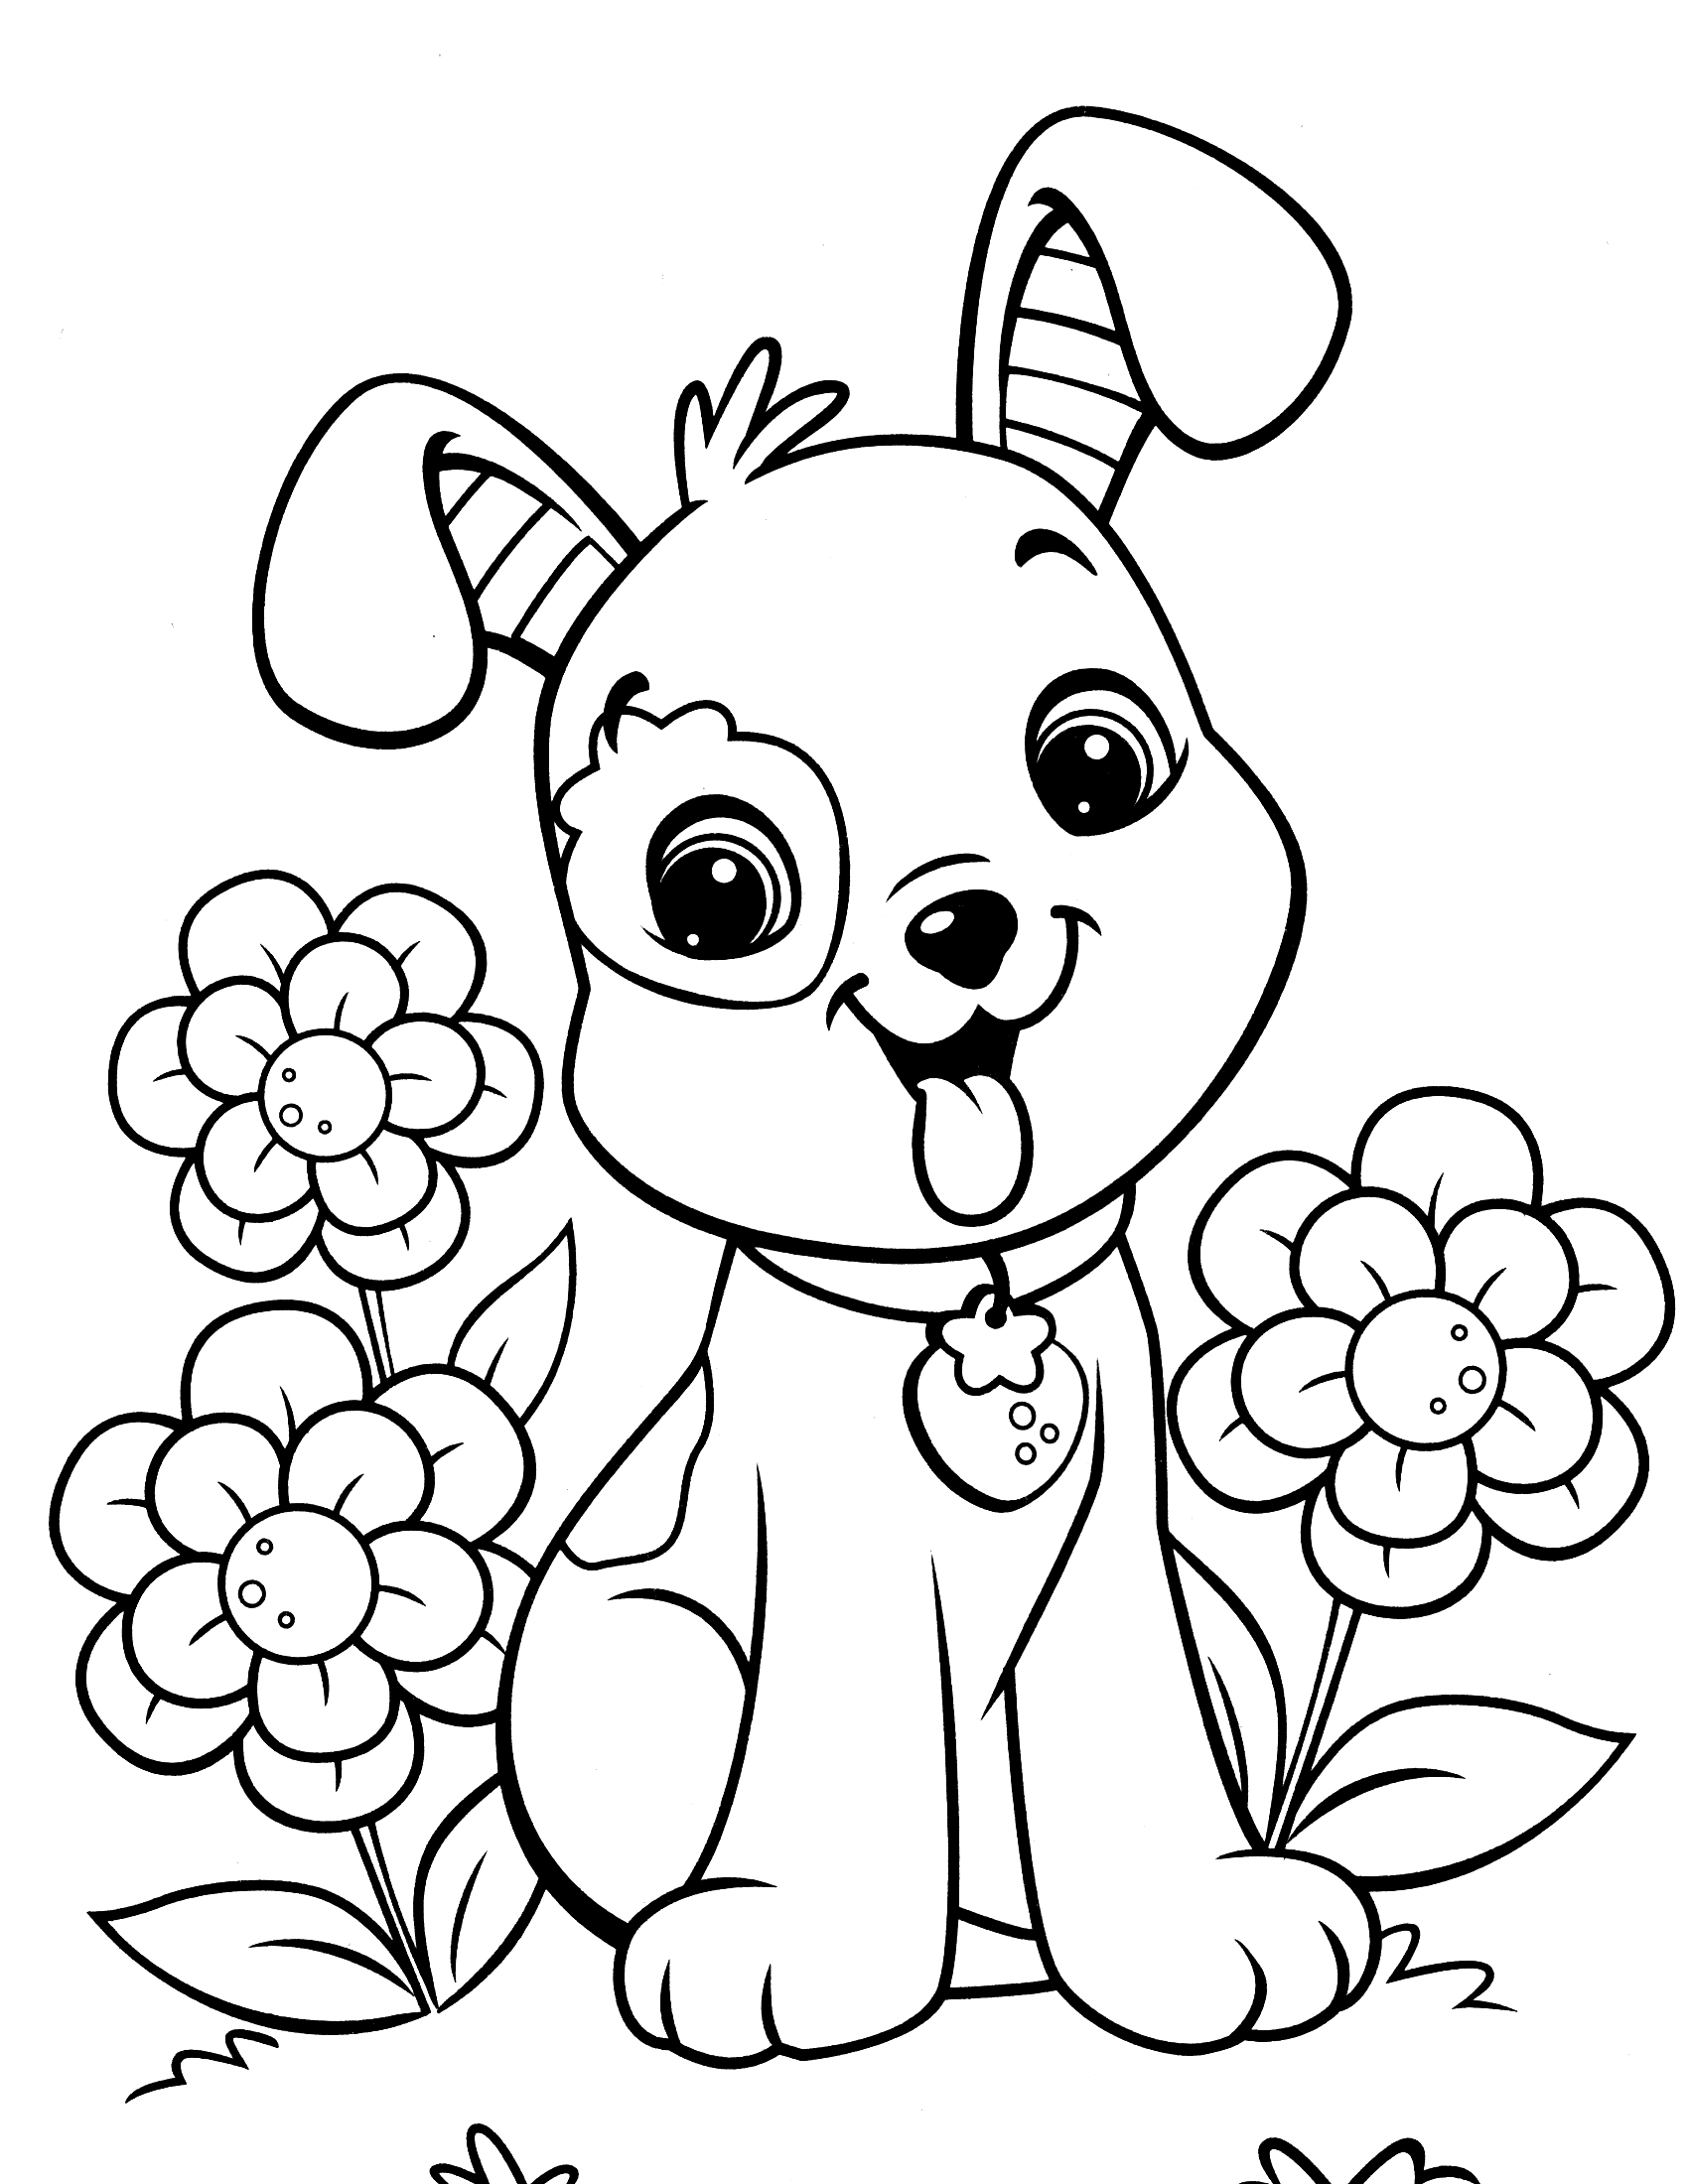 coloring pig for kids puppy coloring pages best coloring pages for kids kids coloring pig for